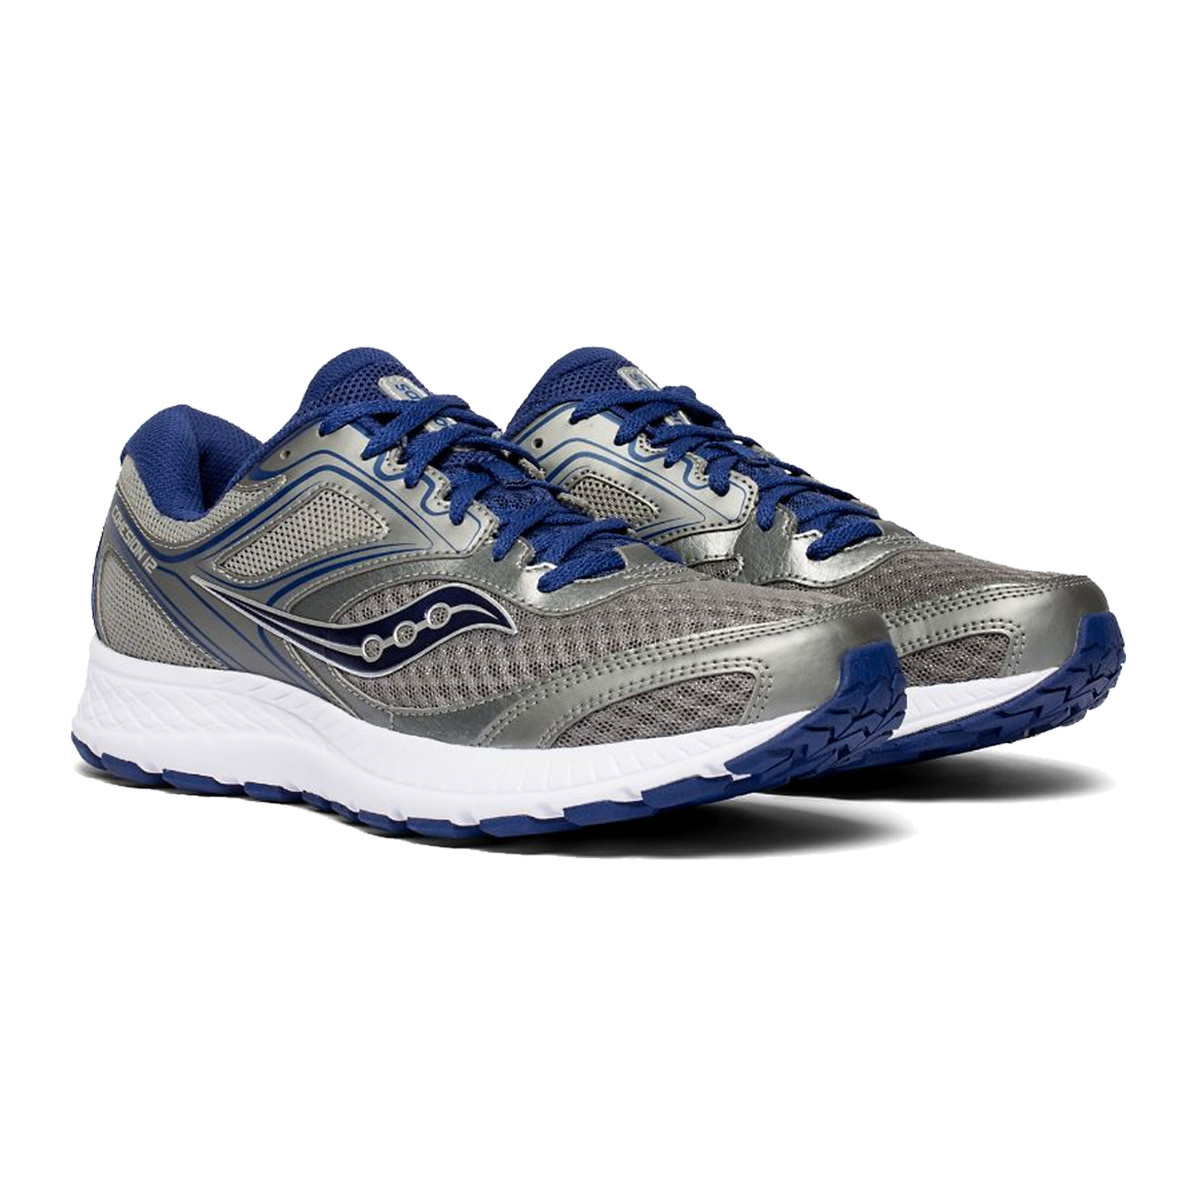 Saucony Saucony Men's Cohesion 12 Gry/Blu Wide